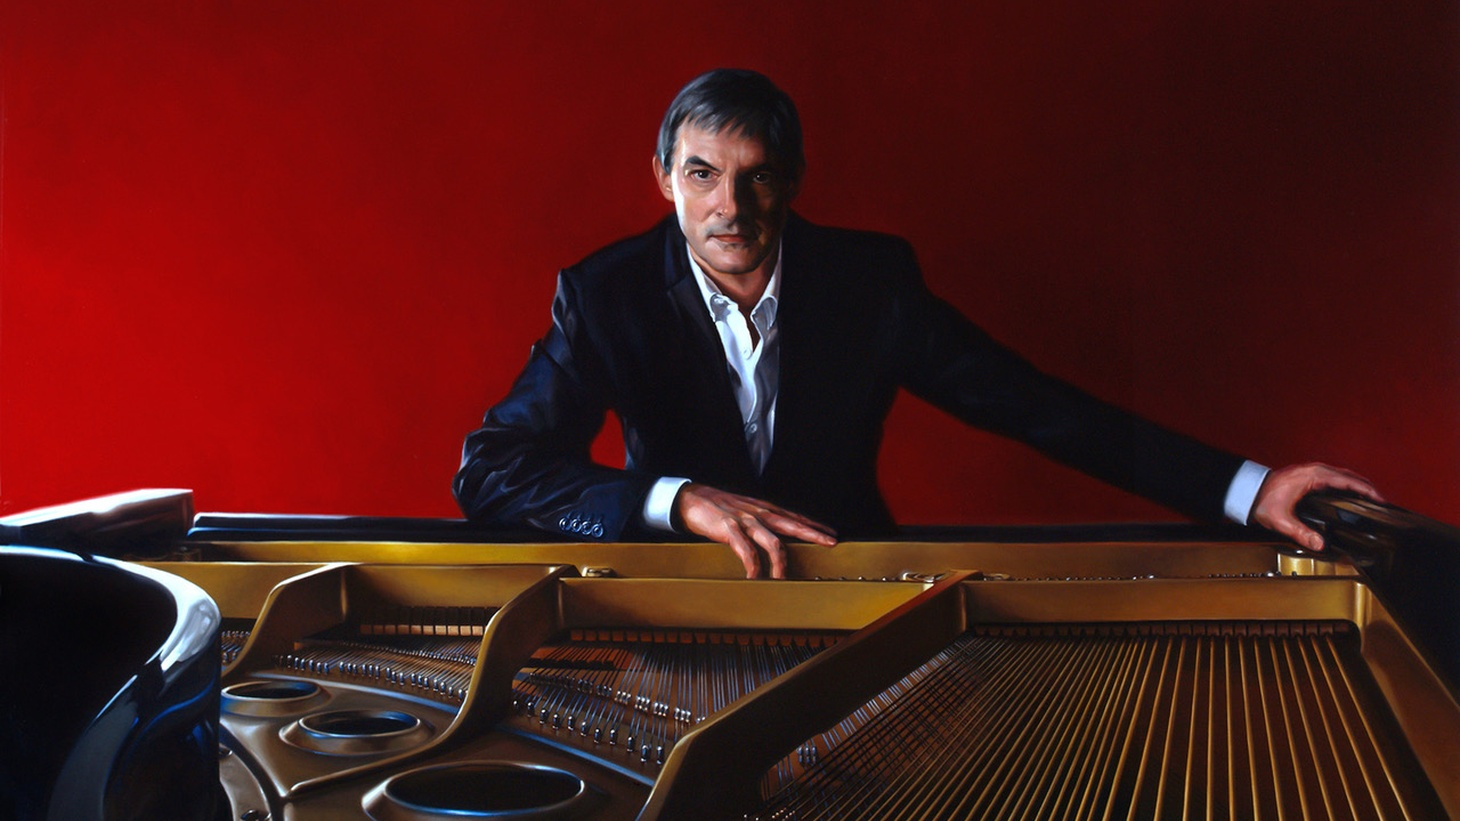 Jazz pianist Christian Jacob